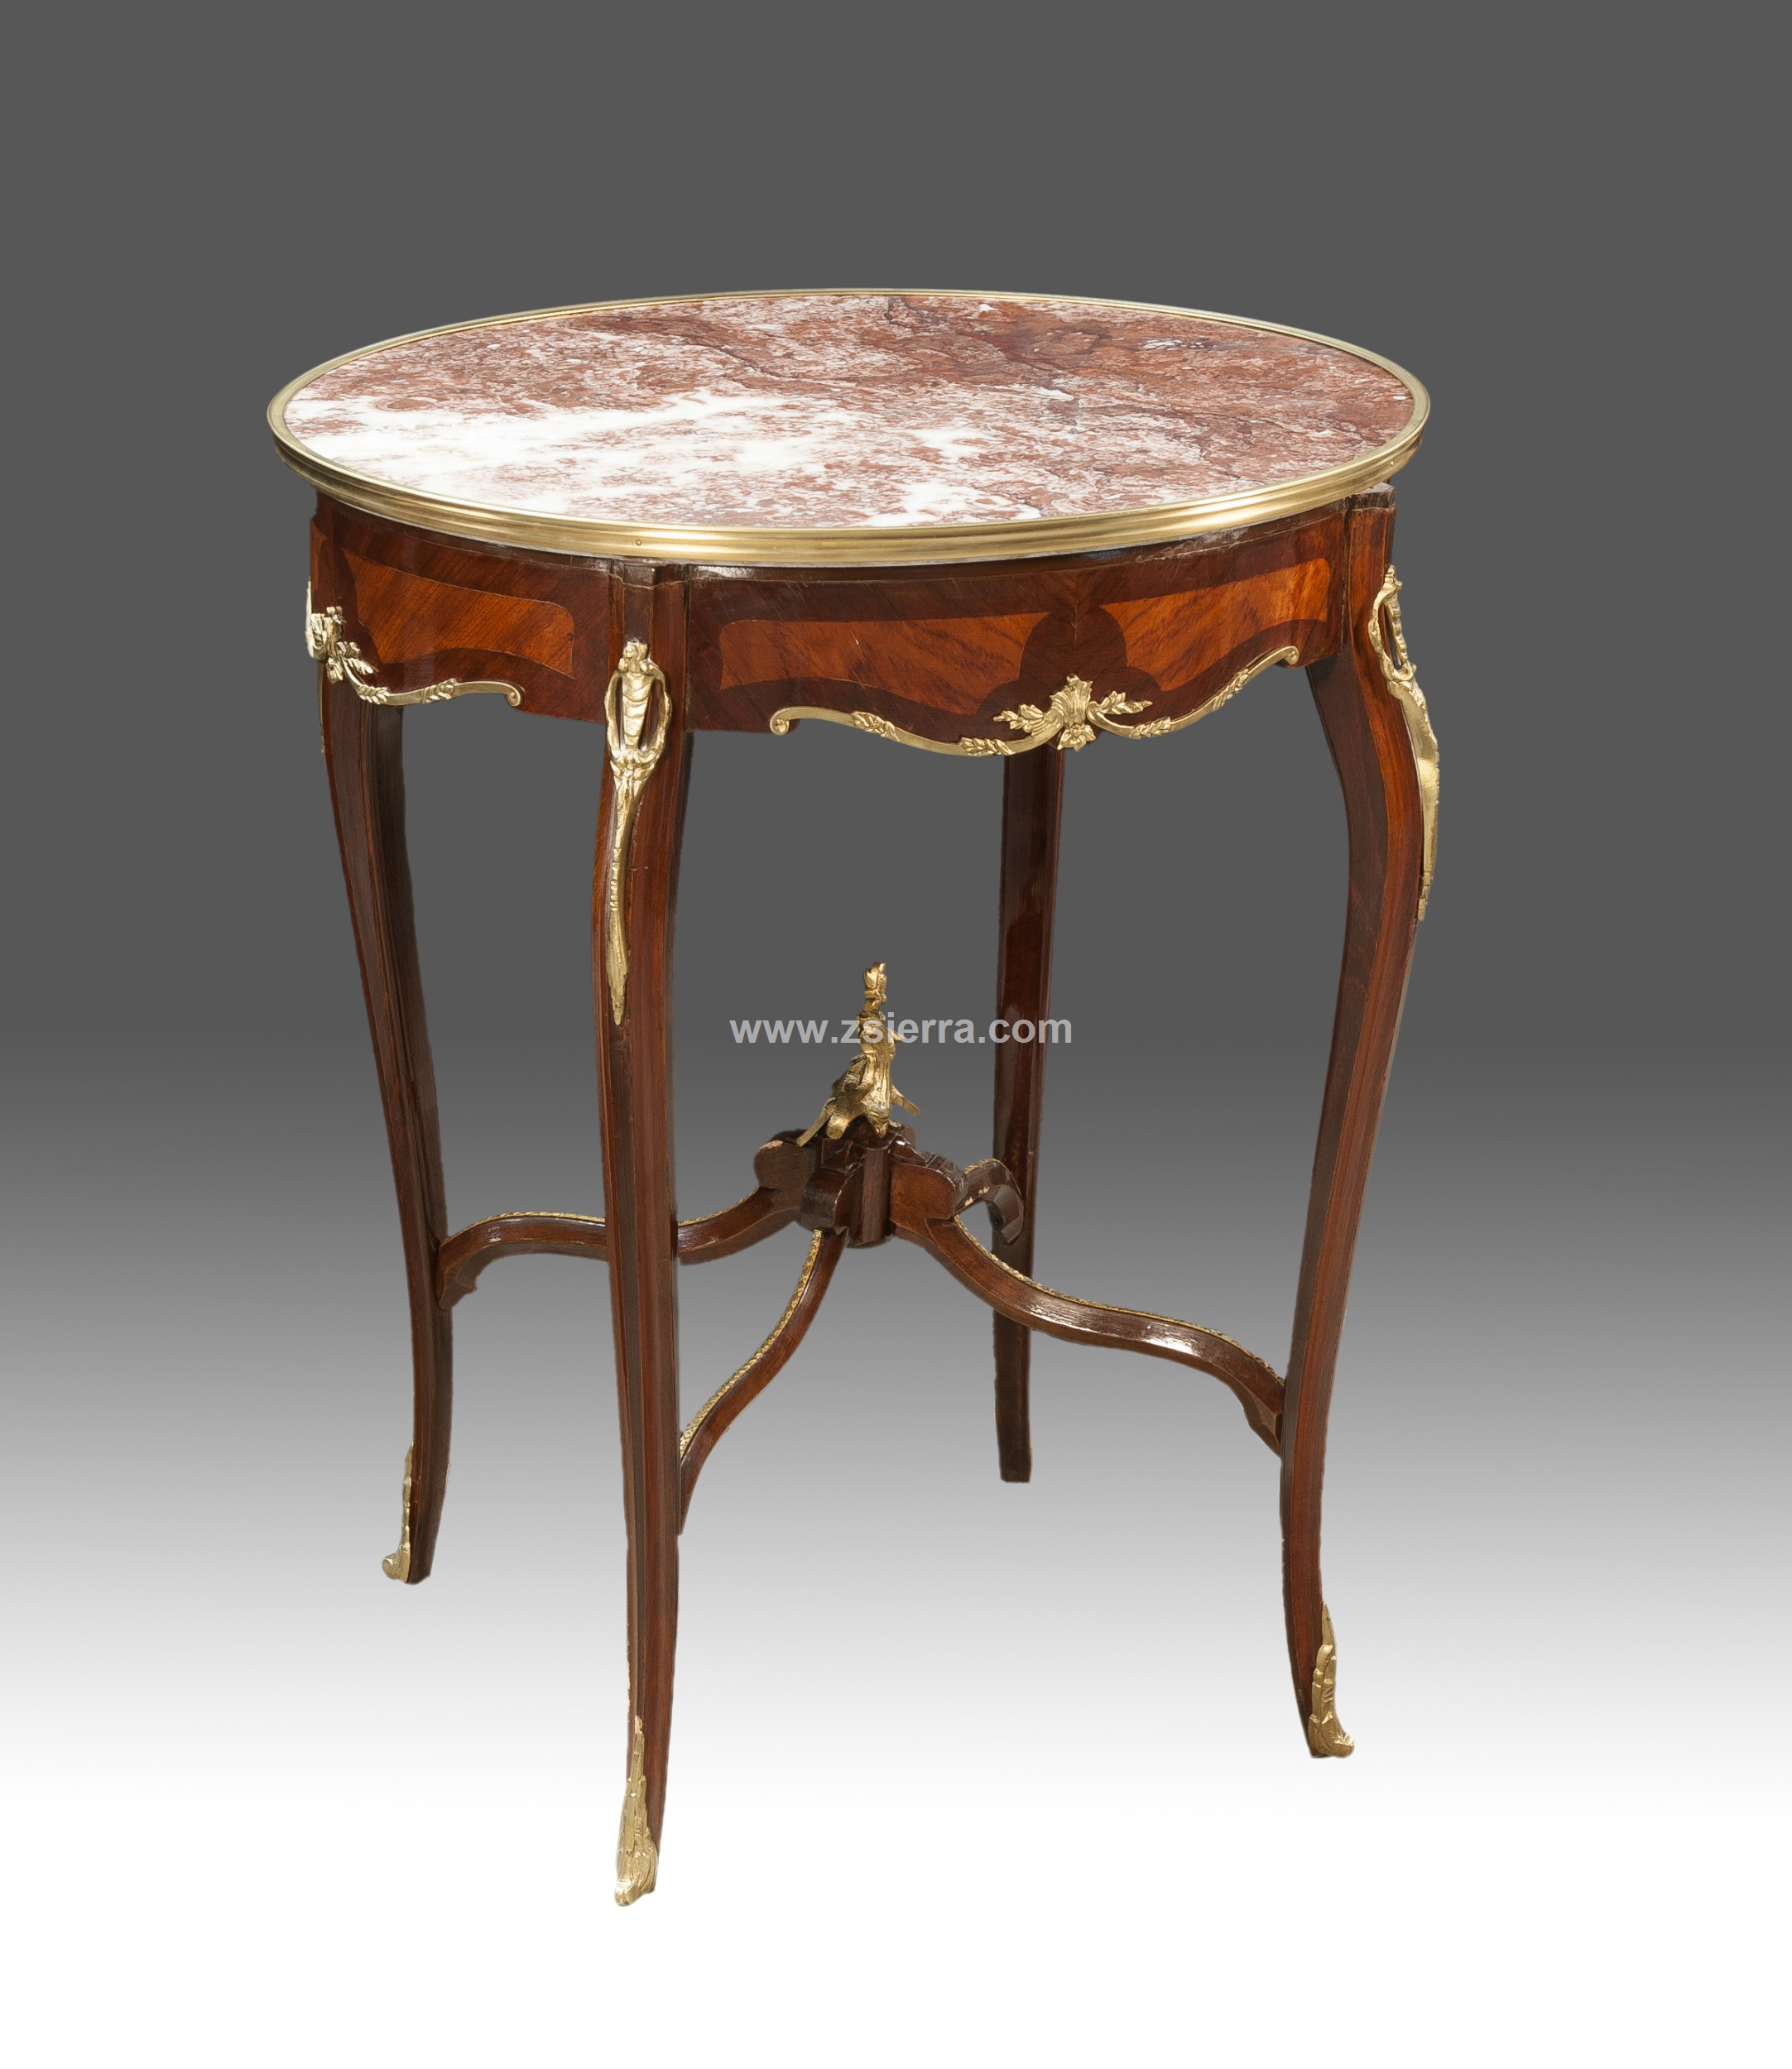 SIDE TABLE, LOUIS XVI STYLE.